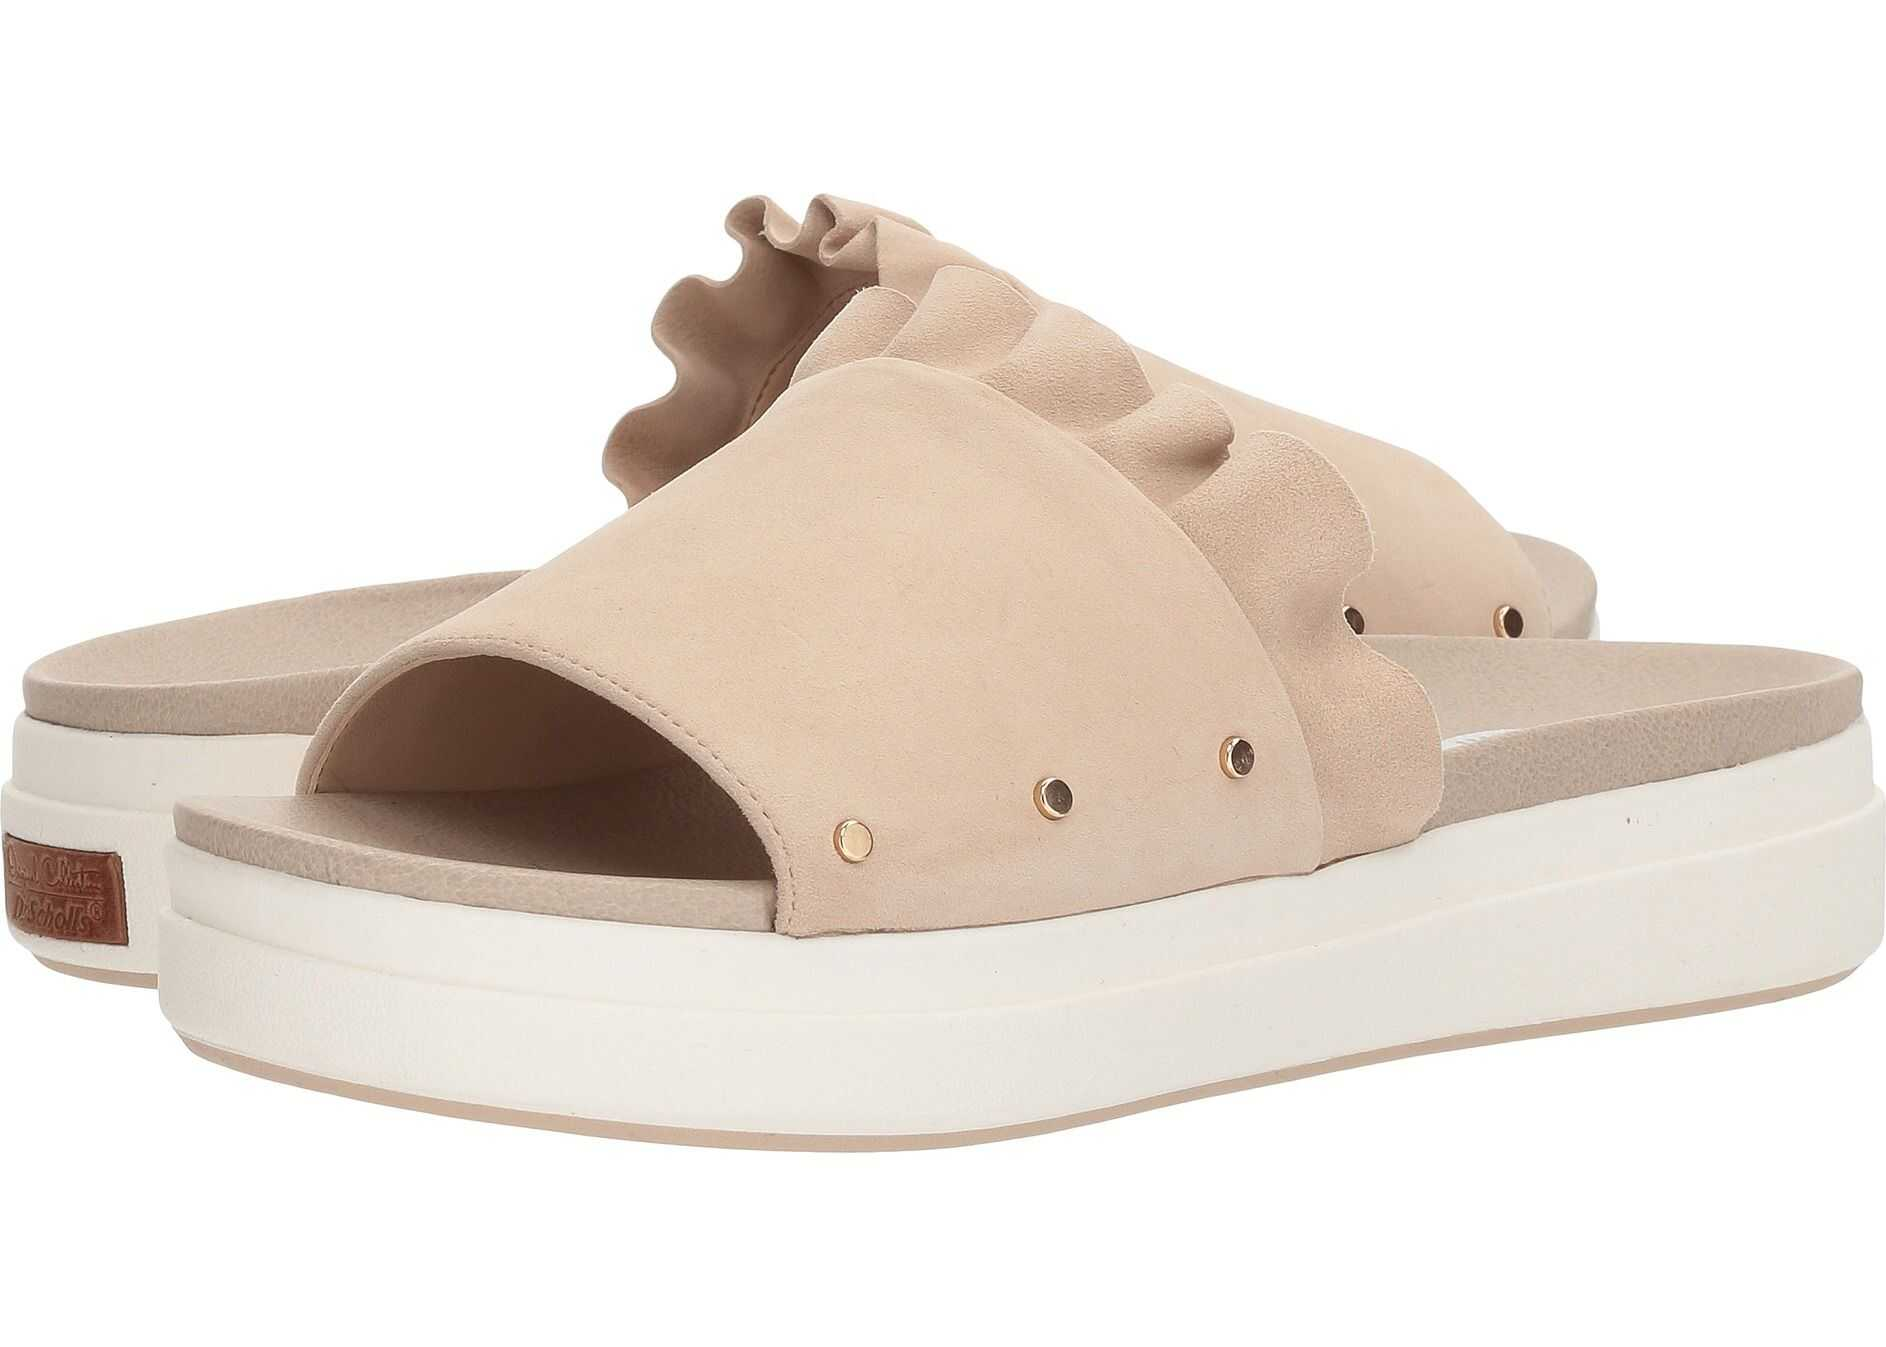 Dr. Scholl's Scout Slide - Original Collection Palomino Suede